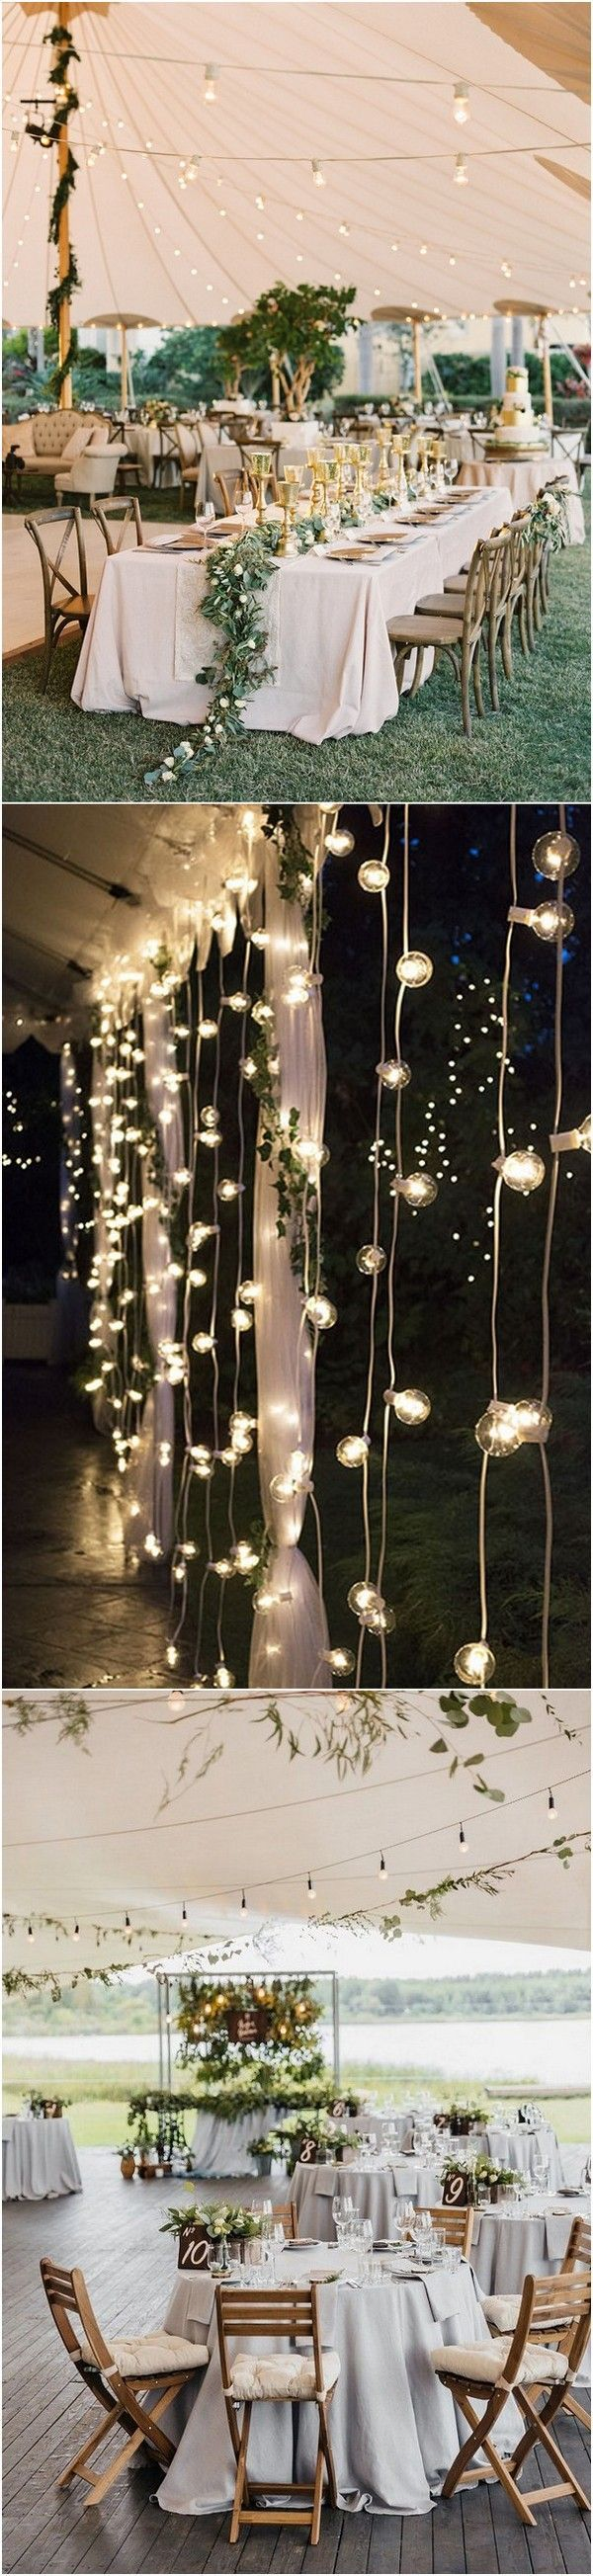 Uncategorized wedding style decor small home garden wedding ideas youtube - Rustic Chic Beach Wedding Decoration Ideas I Love The Use Of Lights To Make The